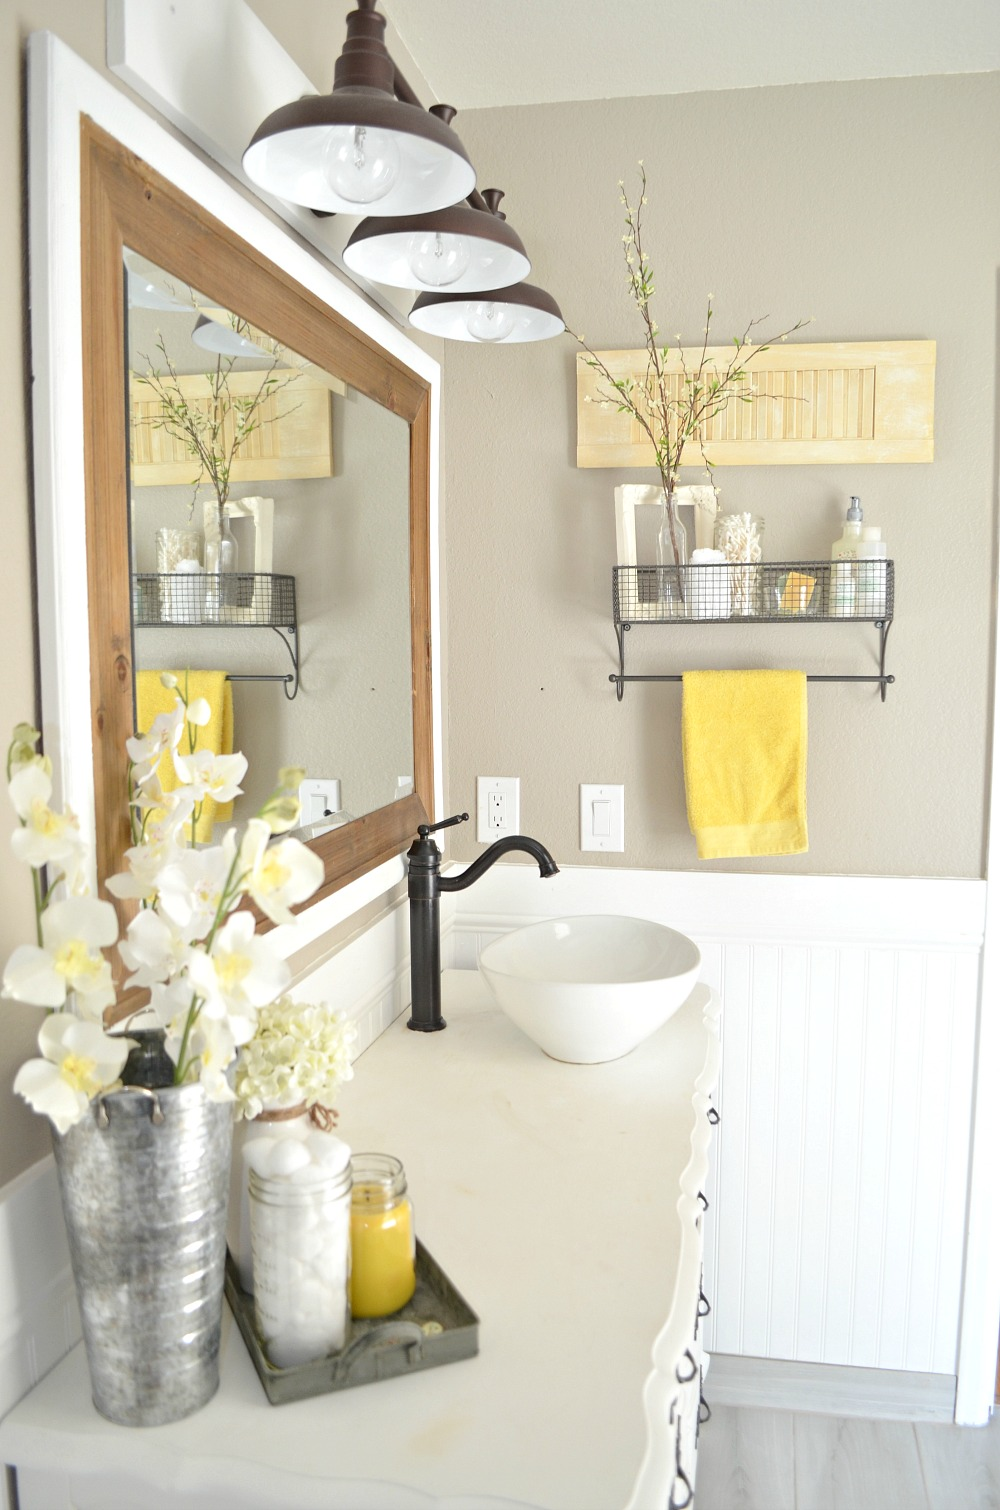 How to easily mix vintage and modern decor little for Home bathroom accessories